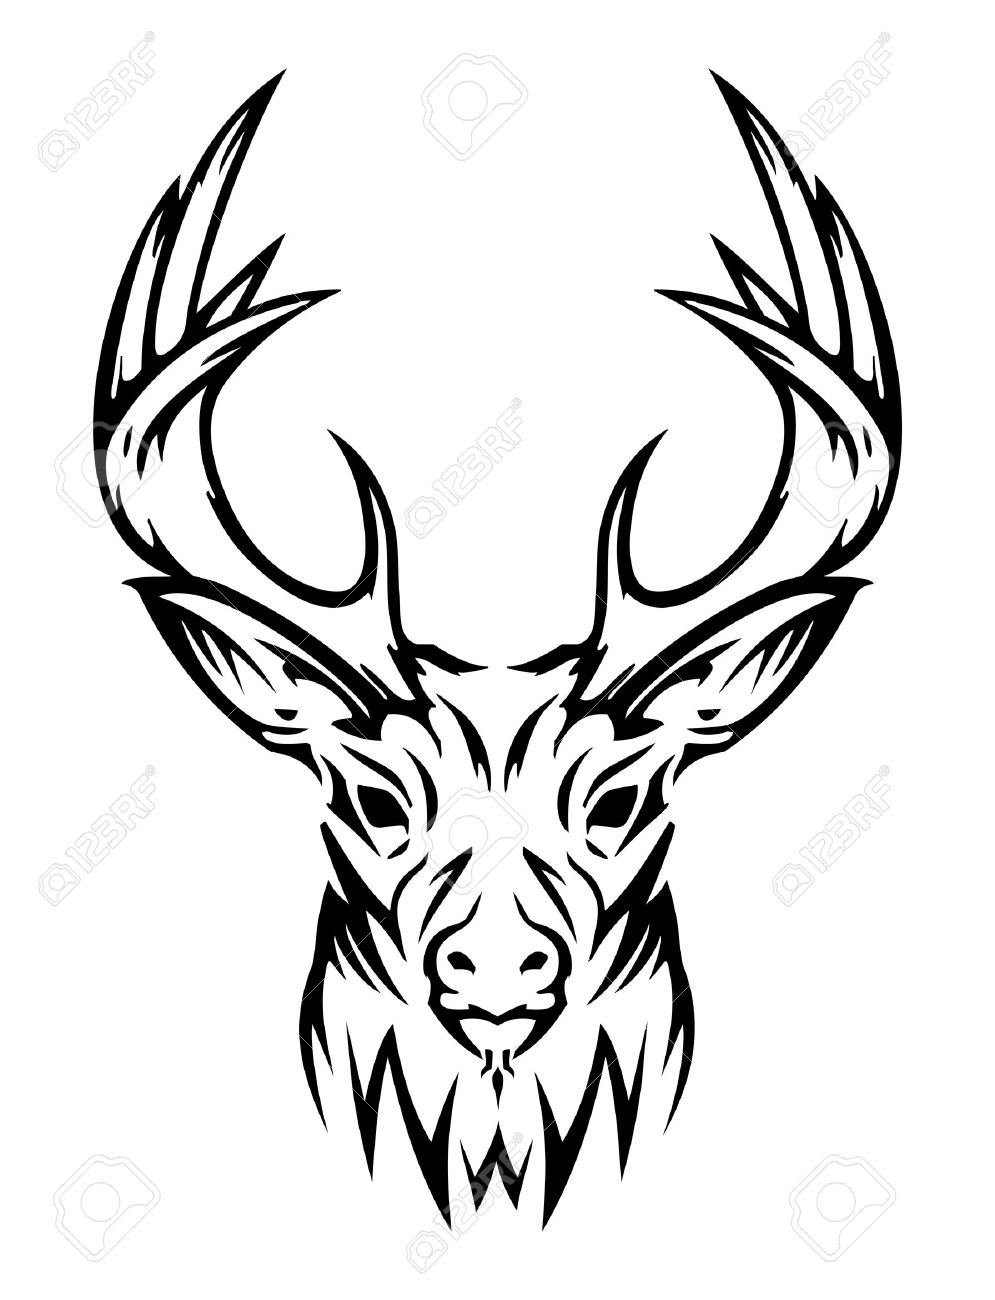 16 Tribal Animal Tattoo Designs Pictures And Photos Ideas And Designs